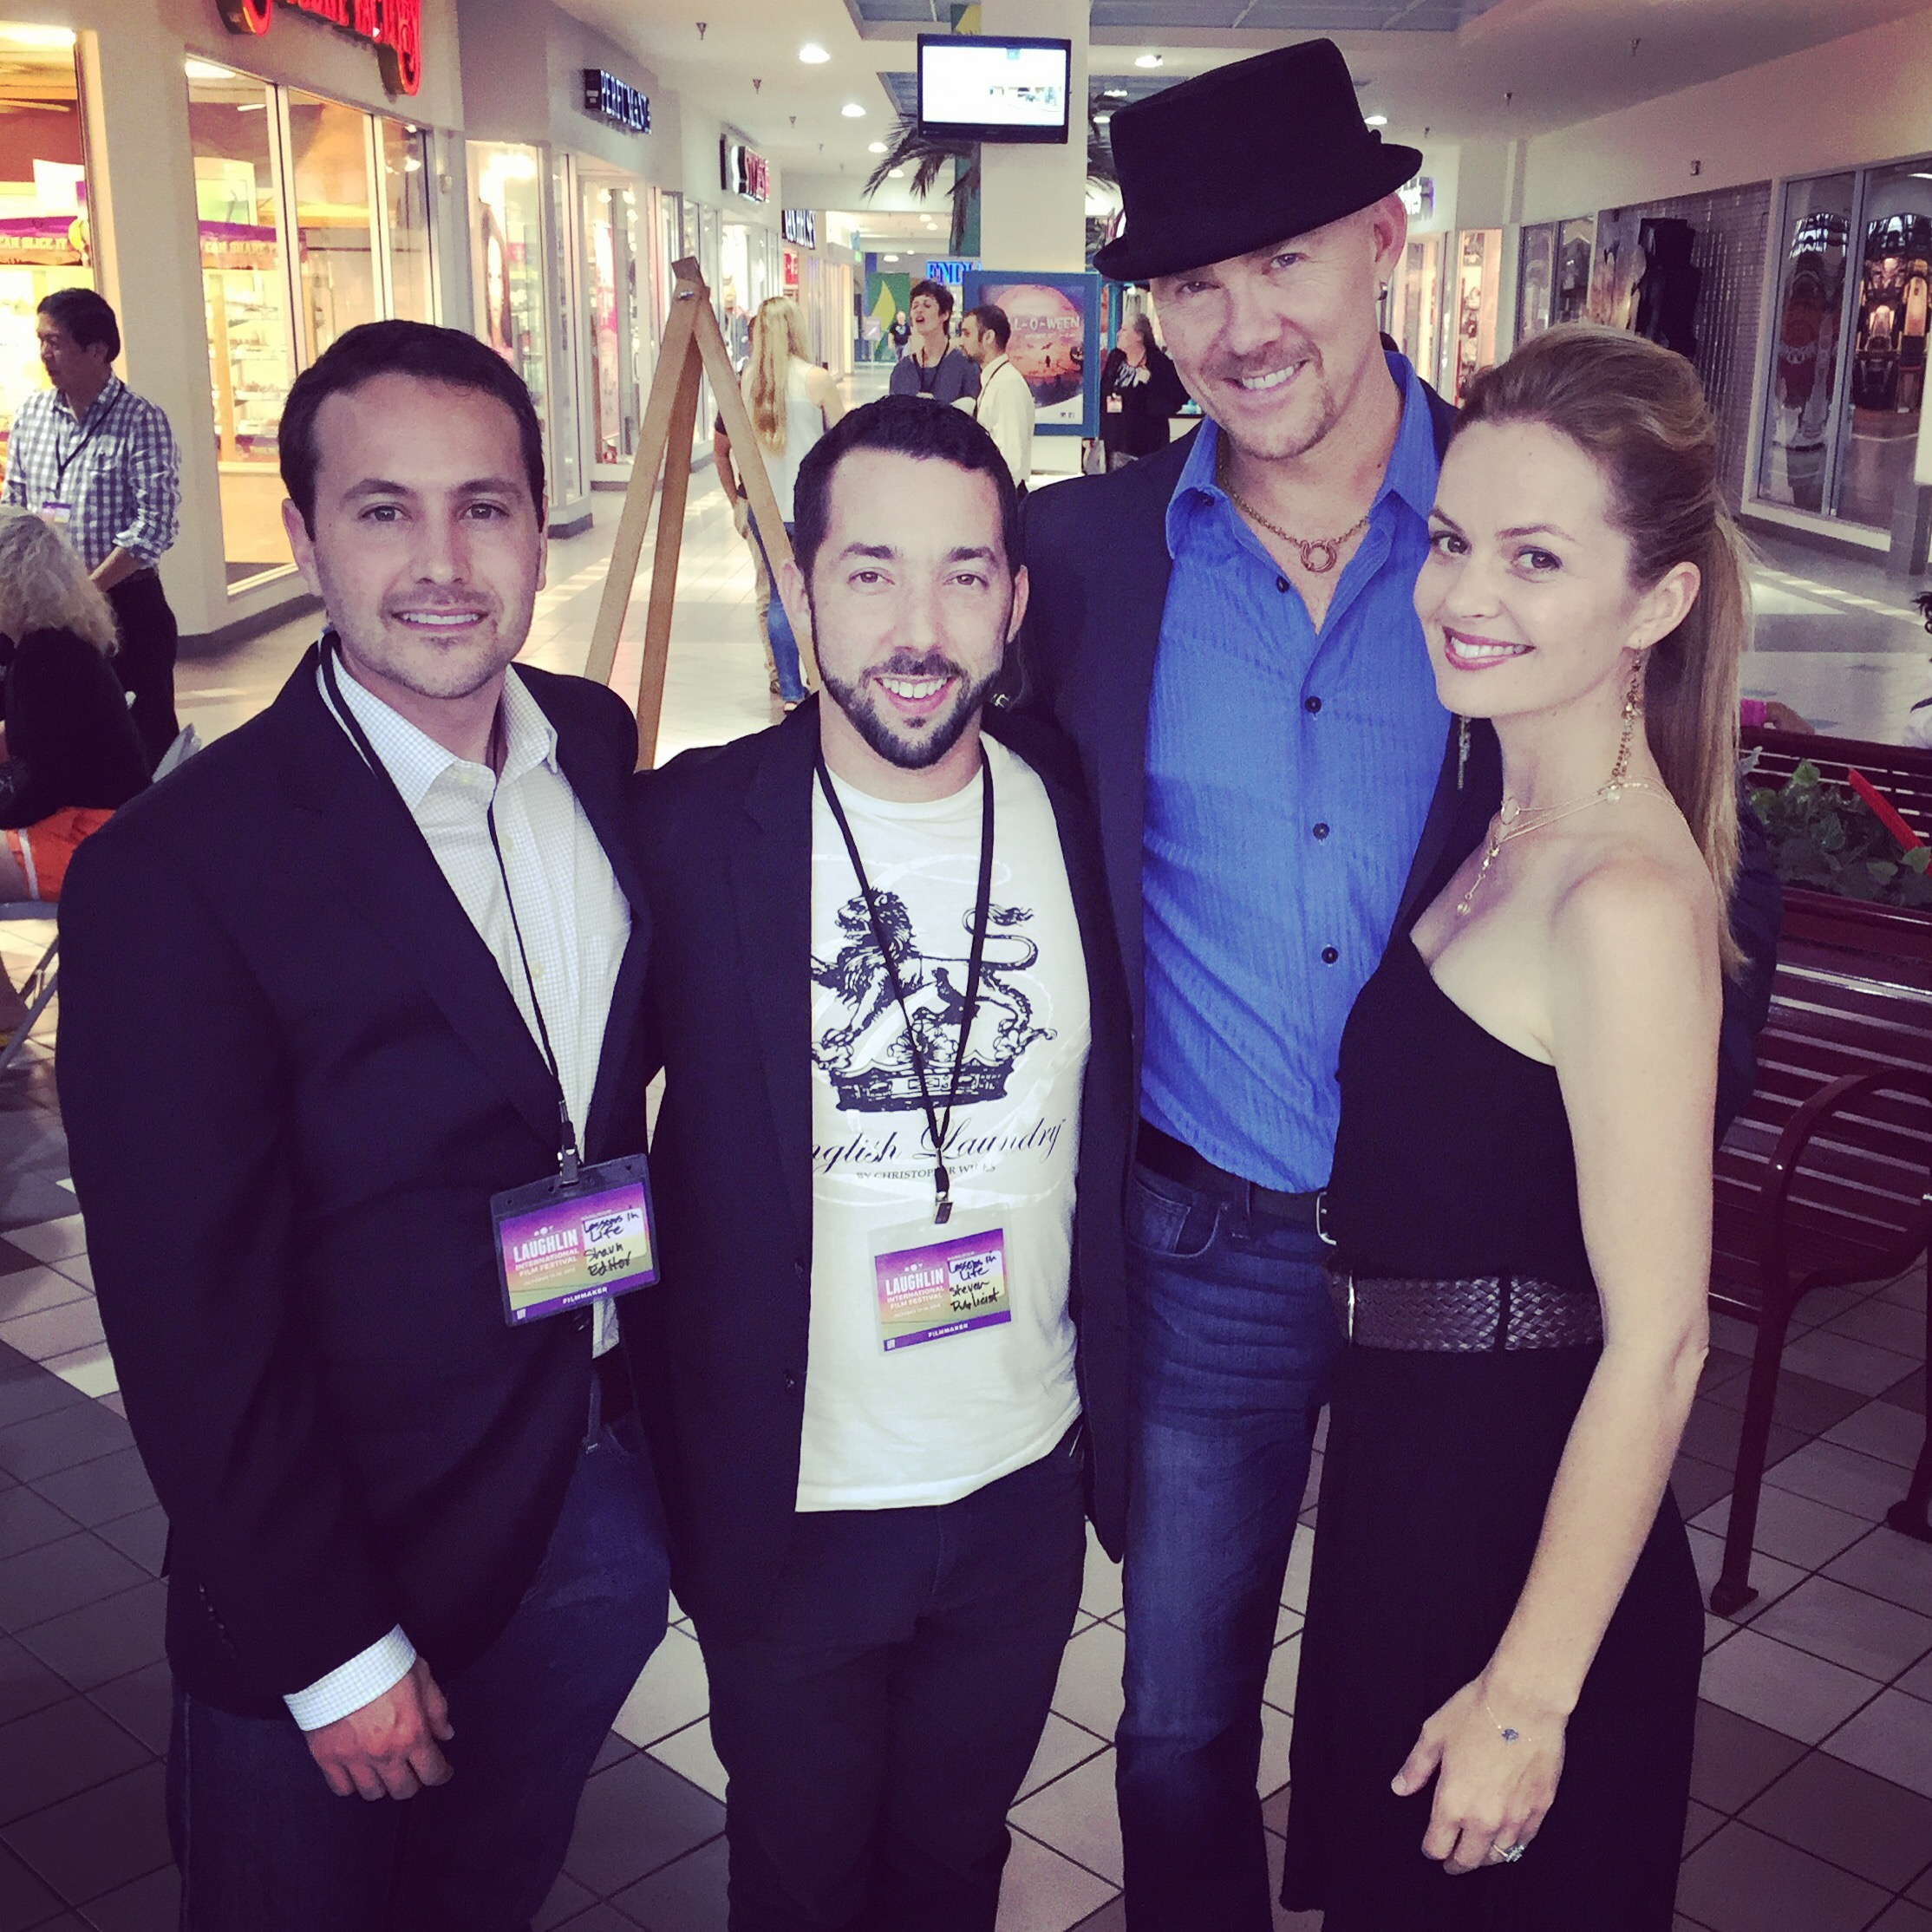 Todd with Shaun Wood, Steven LeVine and Carrie Schroeder